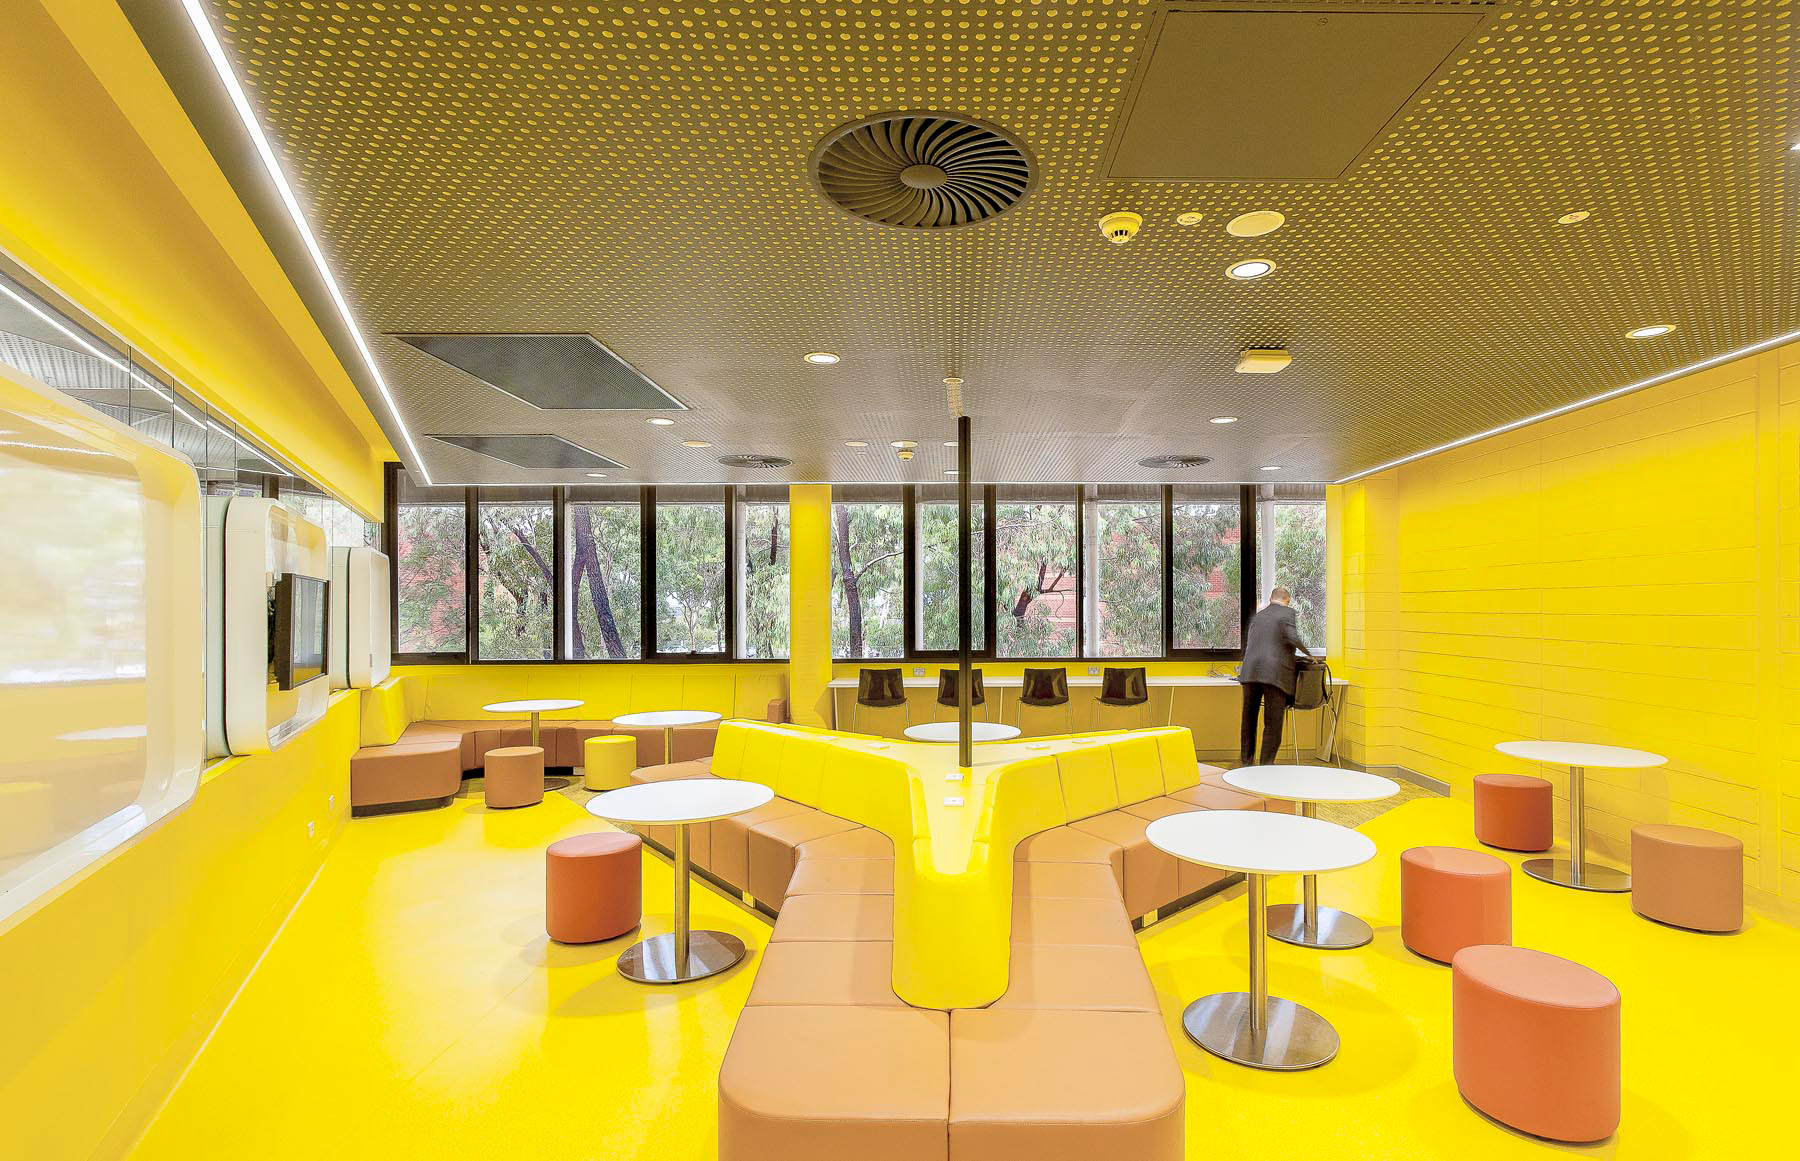 Paul Morgen Architects RMIT University, Building 205 Teaching Spaces